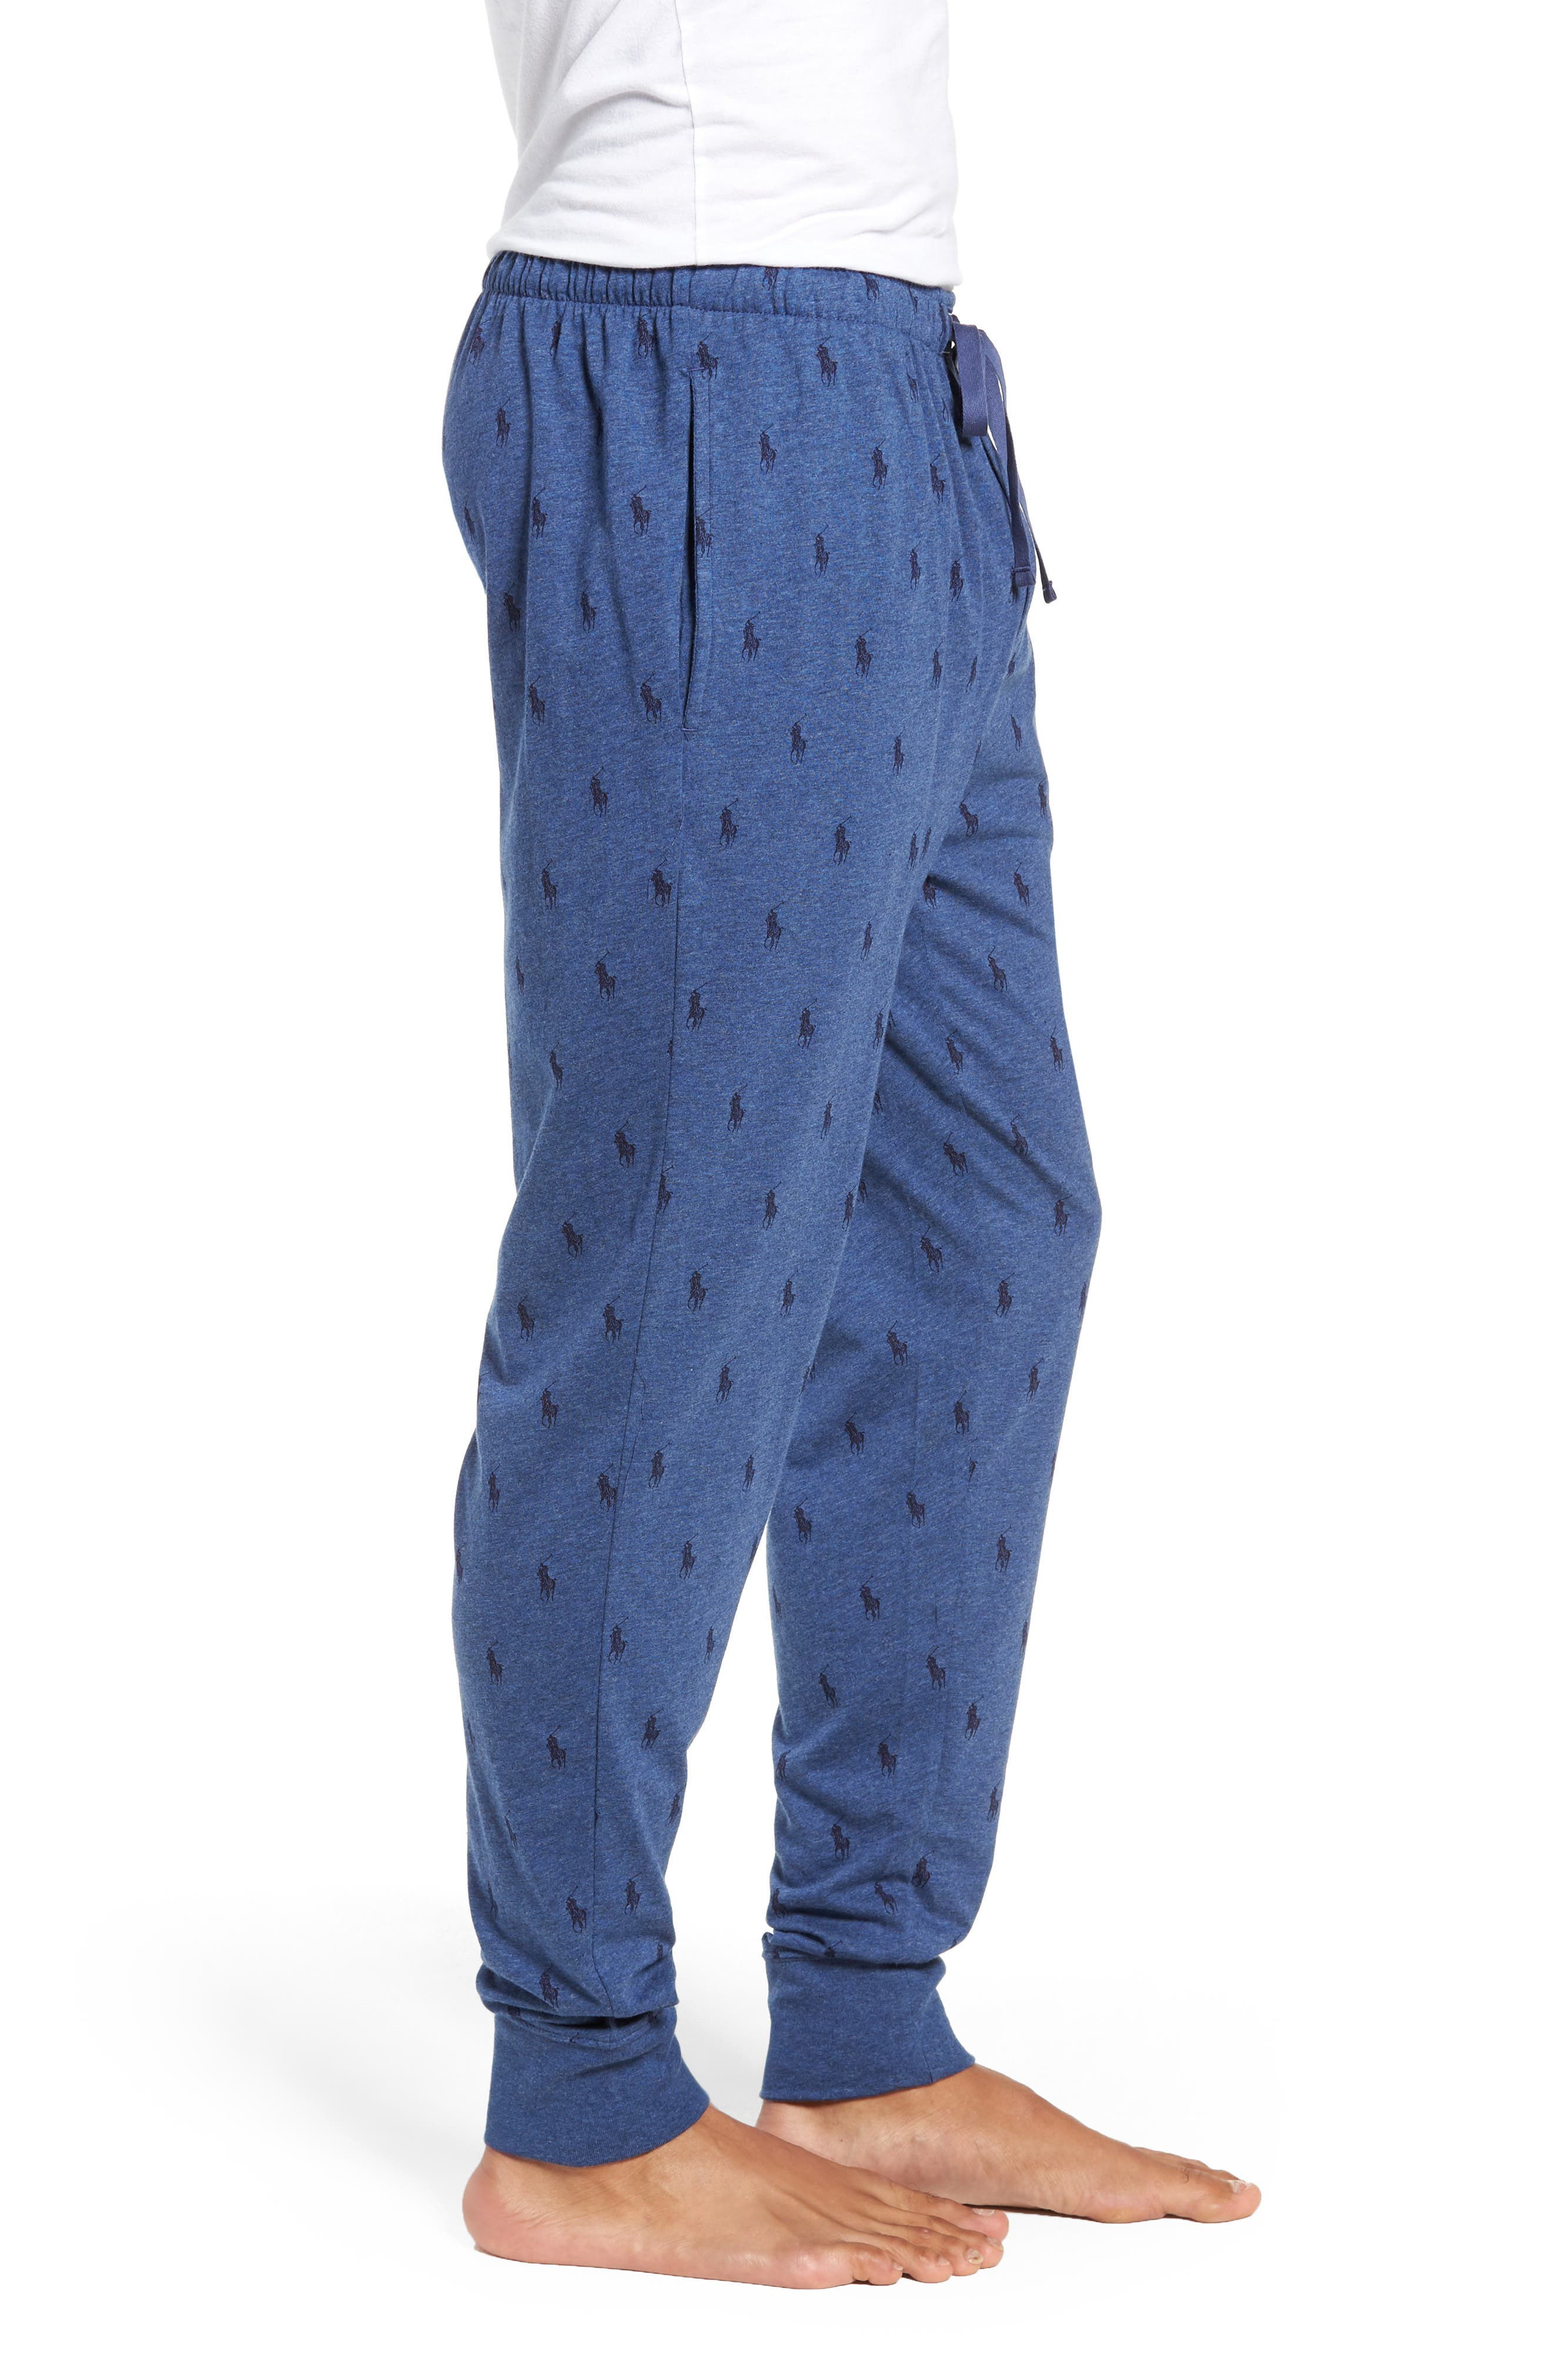 Cotton Pajama Pants,                             Alternate thumbnail 3, color,                             403